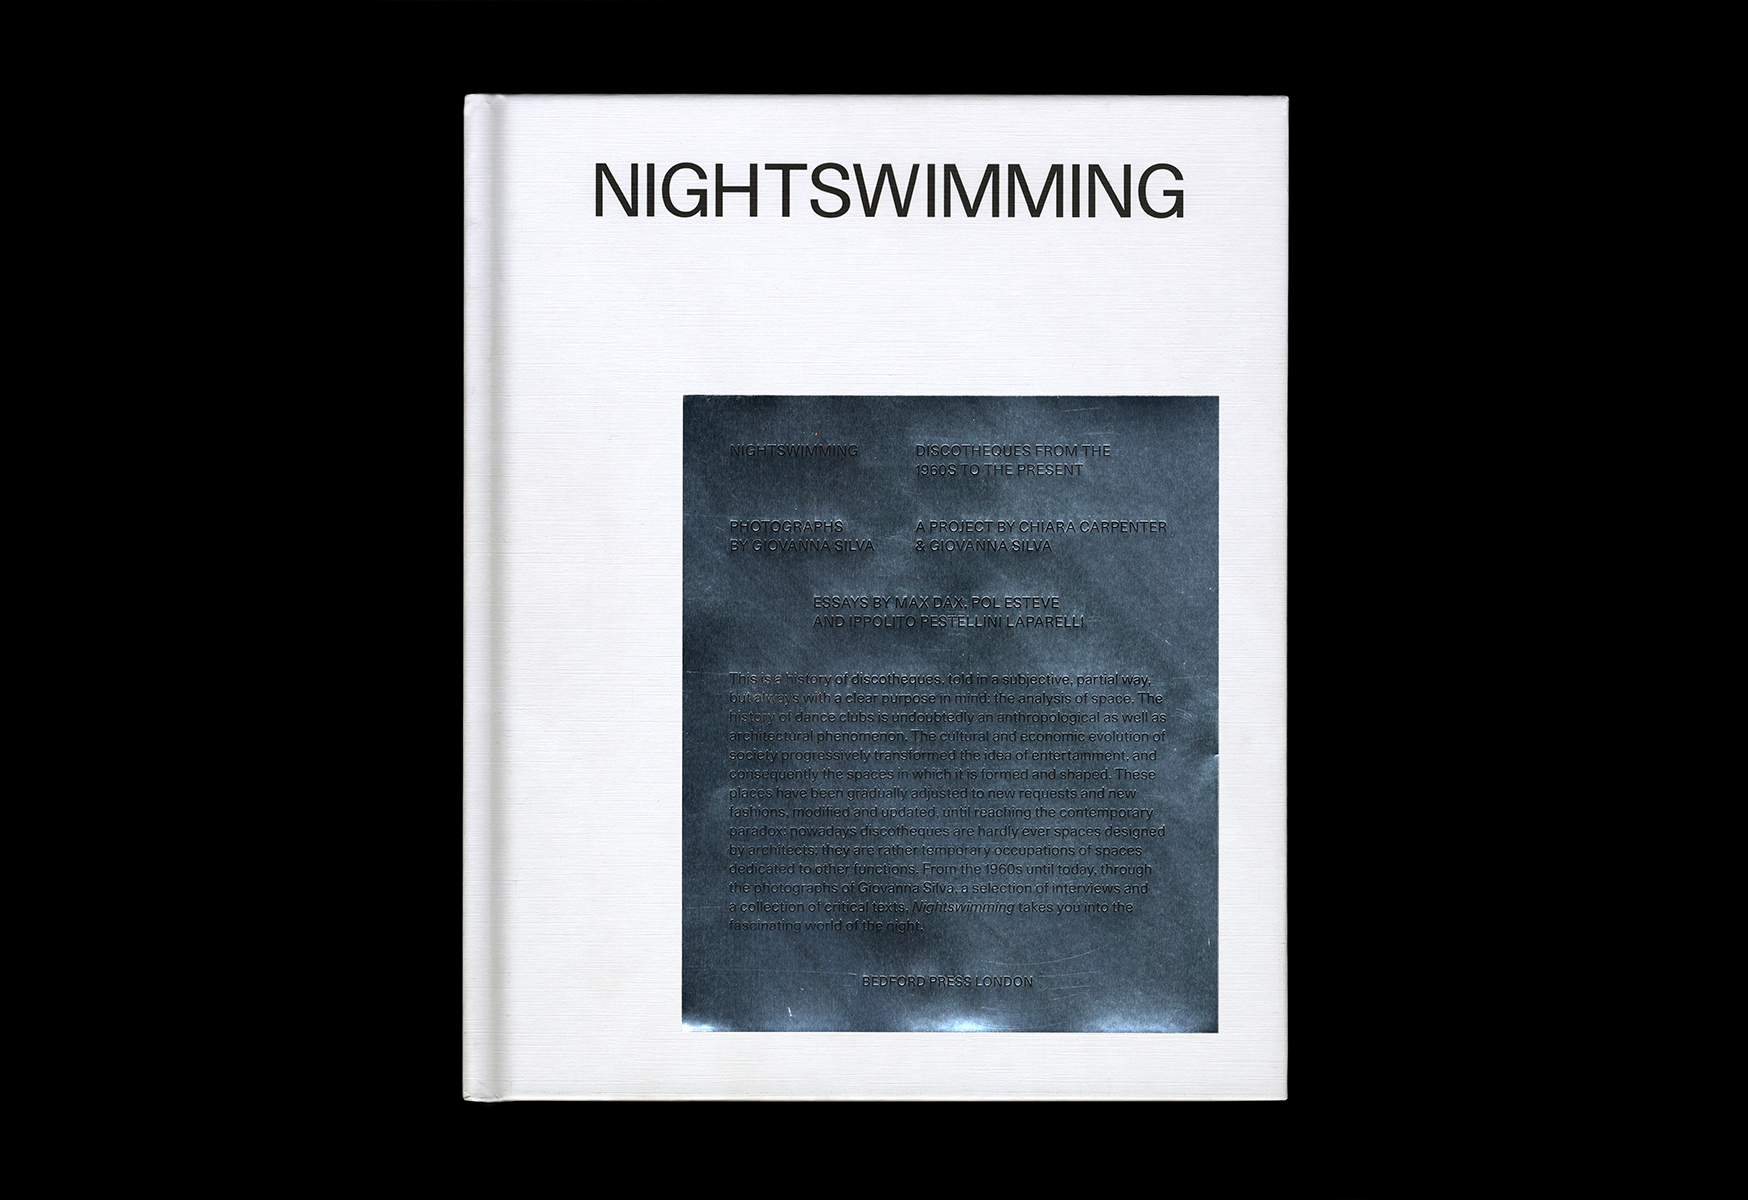 wayne_daly_2015_nightswimming_cover_2